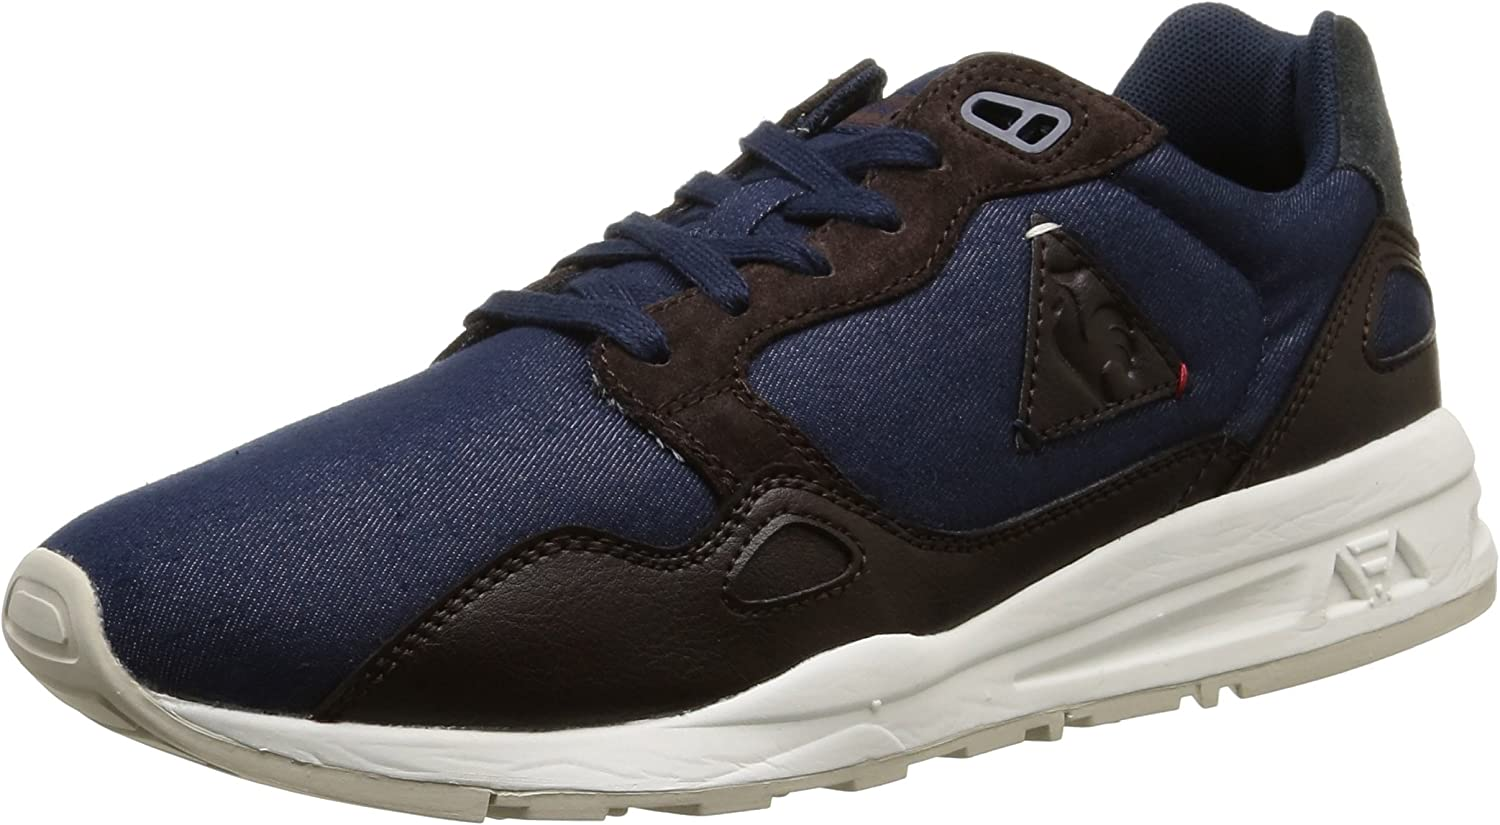 Le Coq Sportif LCS R900 Craft, Men's Trainers